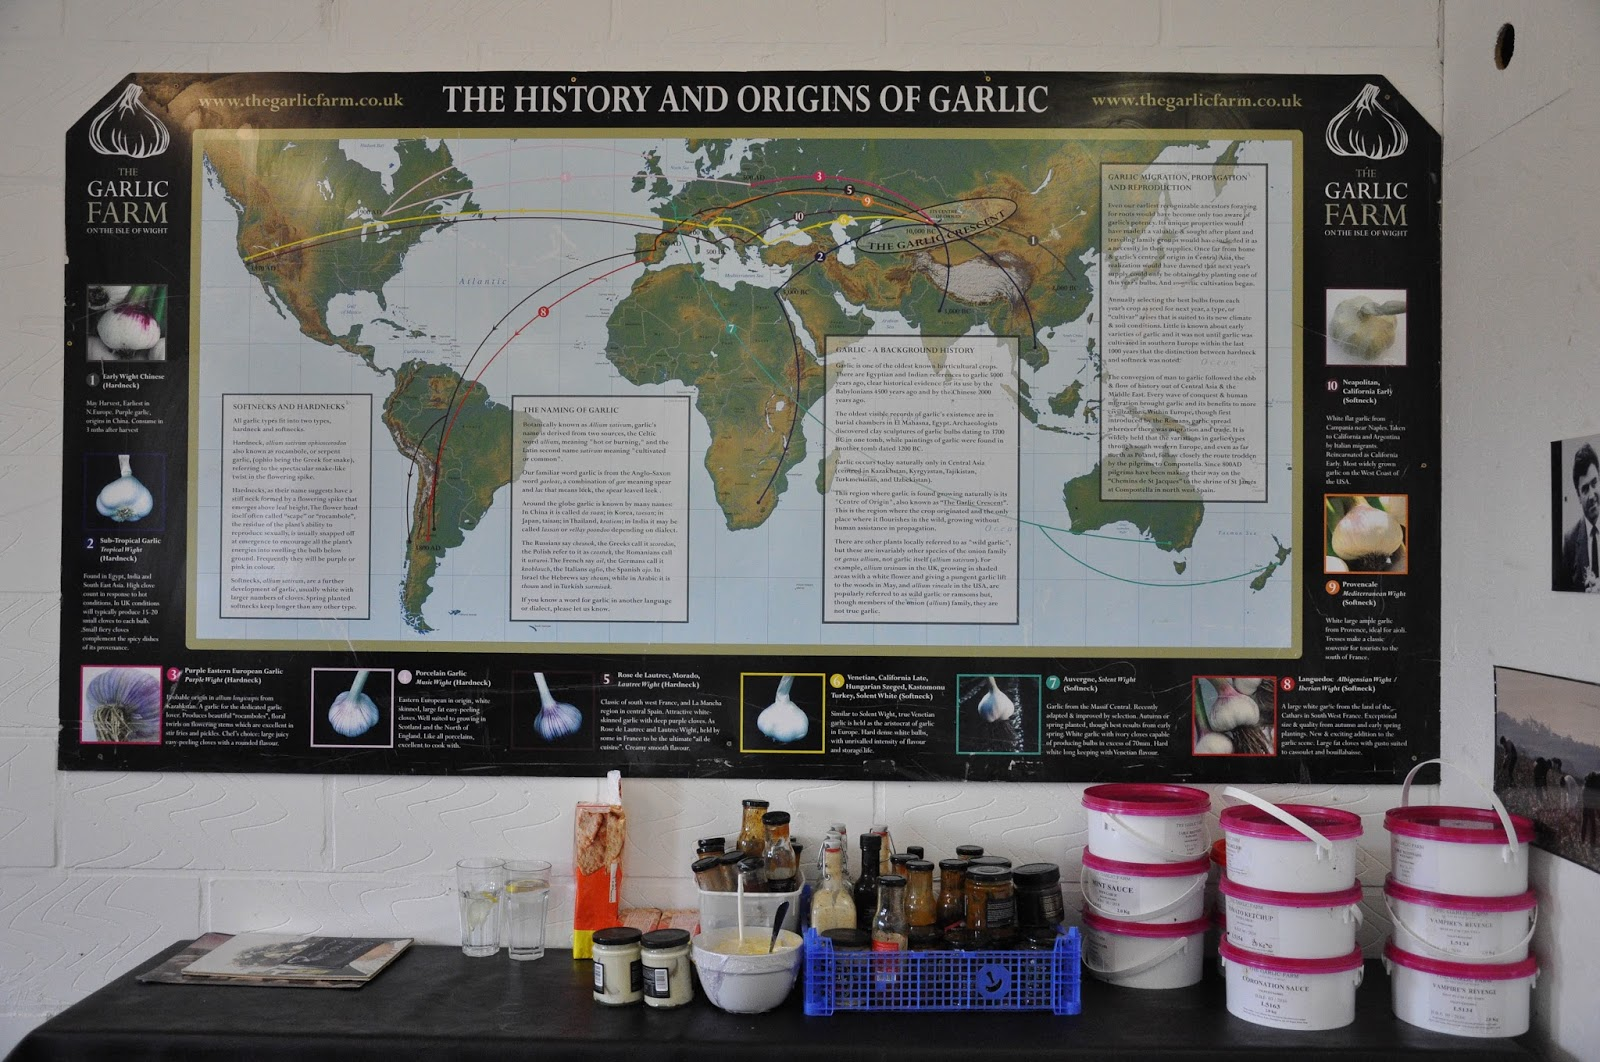 History and Origins of garlic map, The Garlic Farm, Isle of Wight, UK